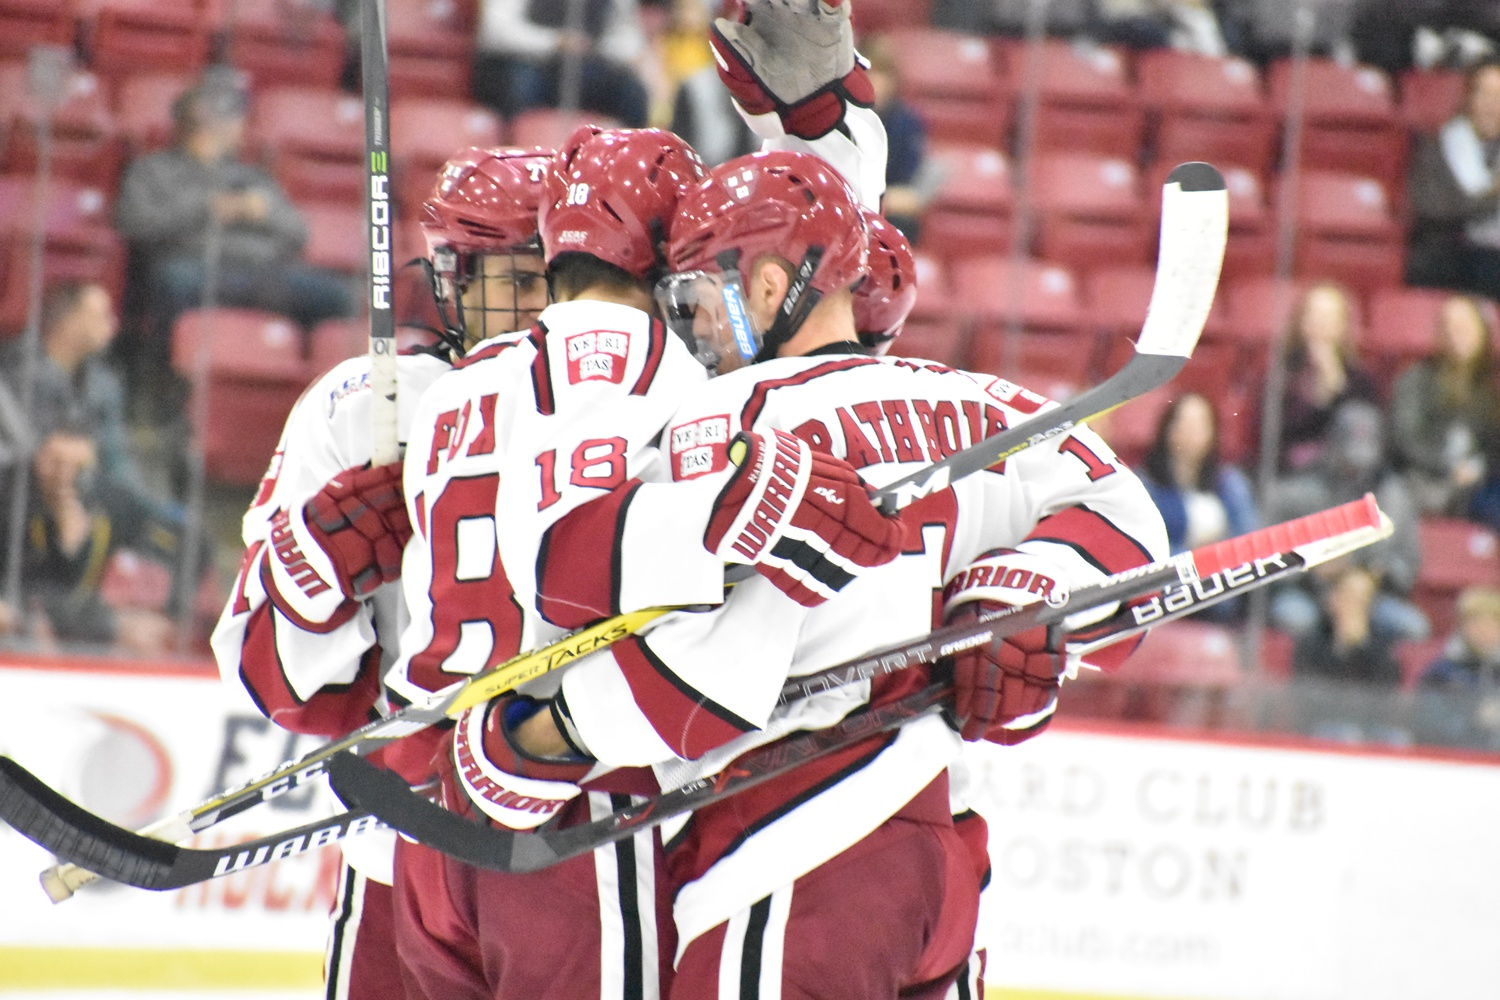 The Crimson's top-ranked power play (28.8%), a potent offensive weapon all season, faces the second-best man advantage unit (28.7%) in the Minutemen.